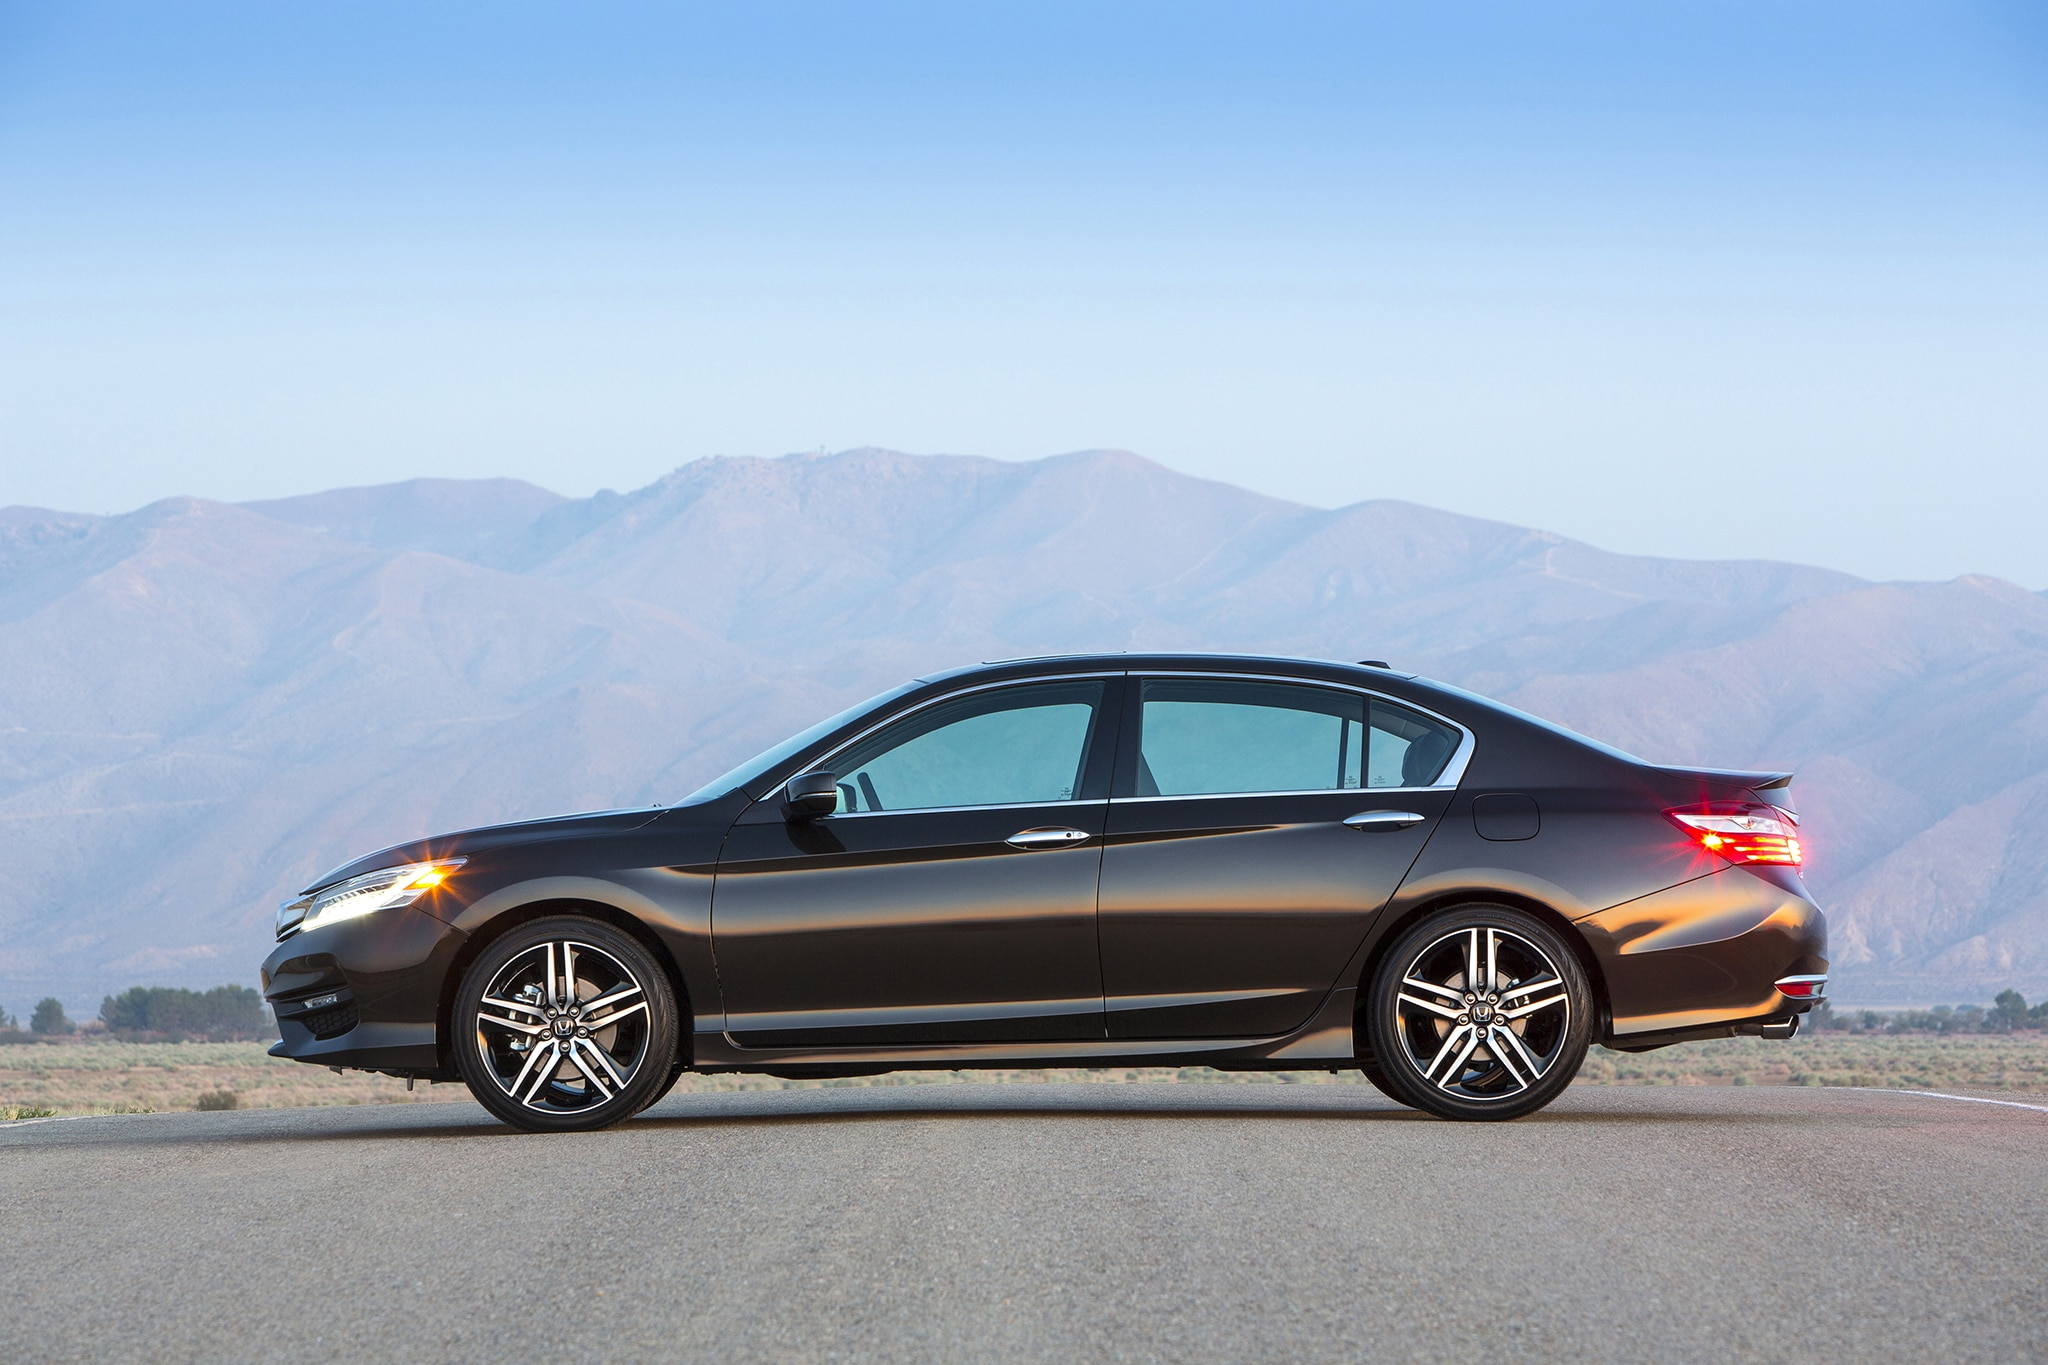 2016 honda accord 9th generation 1 automobile for Honda accord generations